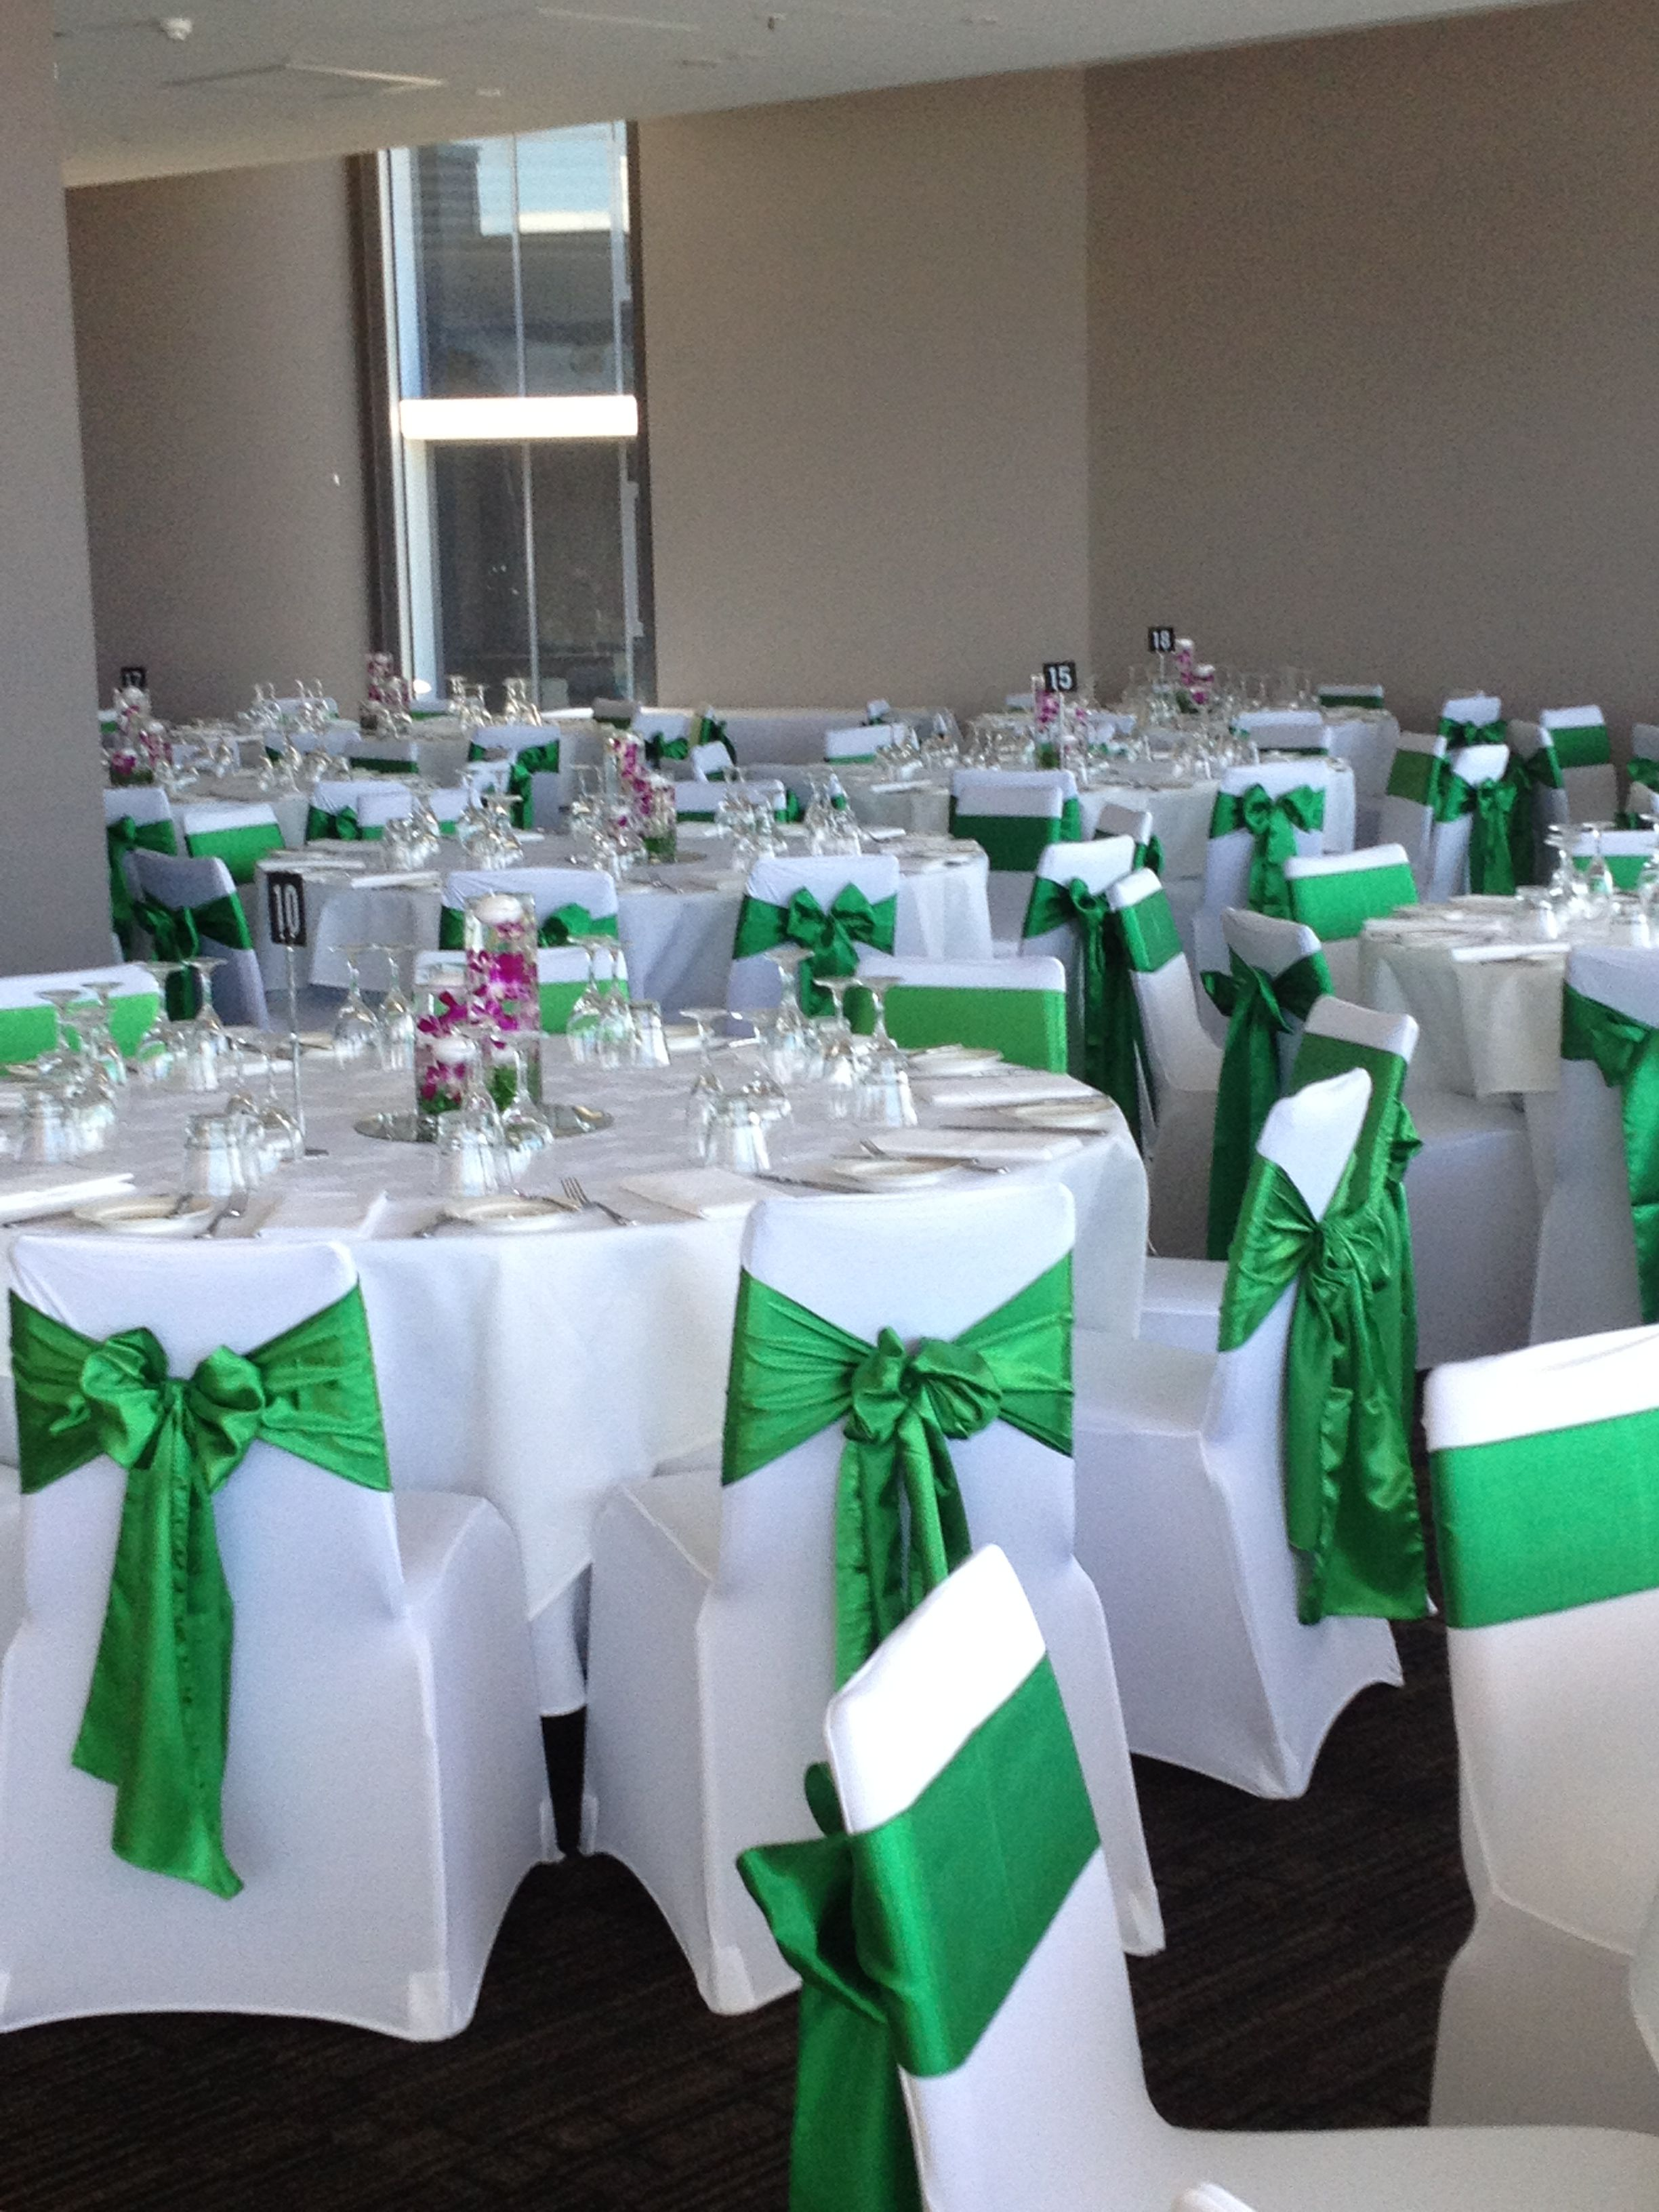 White Lycra Chair Covers With Emerald Green Satin Sashes Setup By Wedding Hire Melbourne